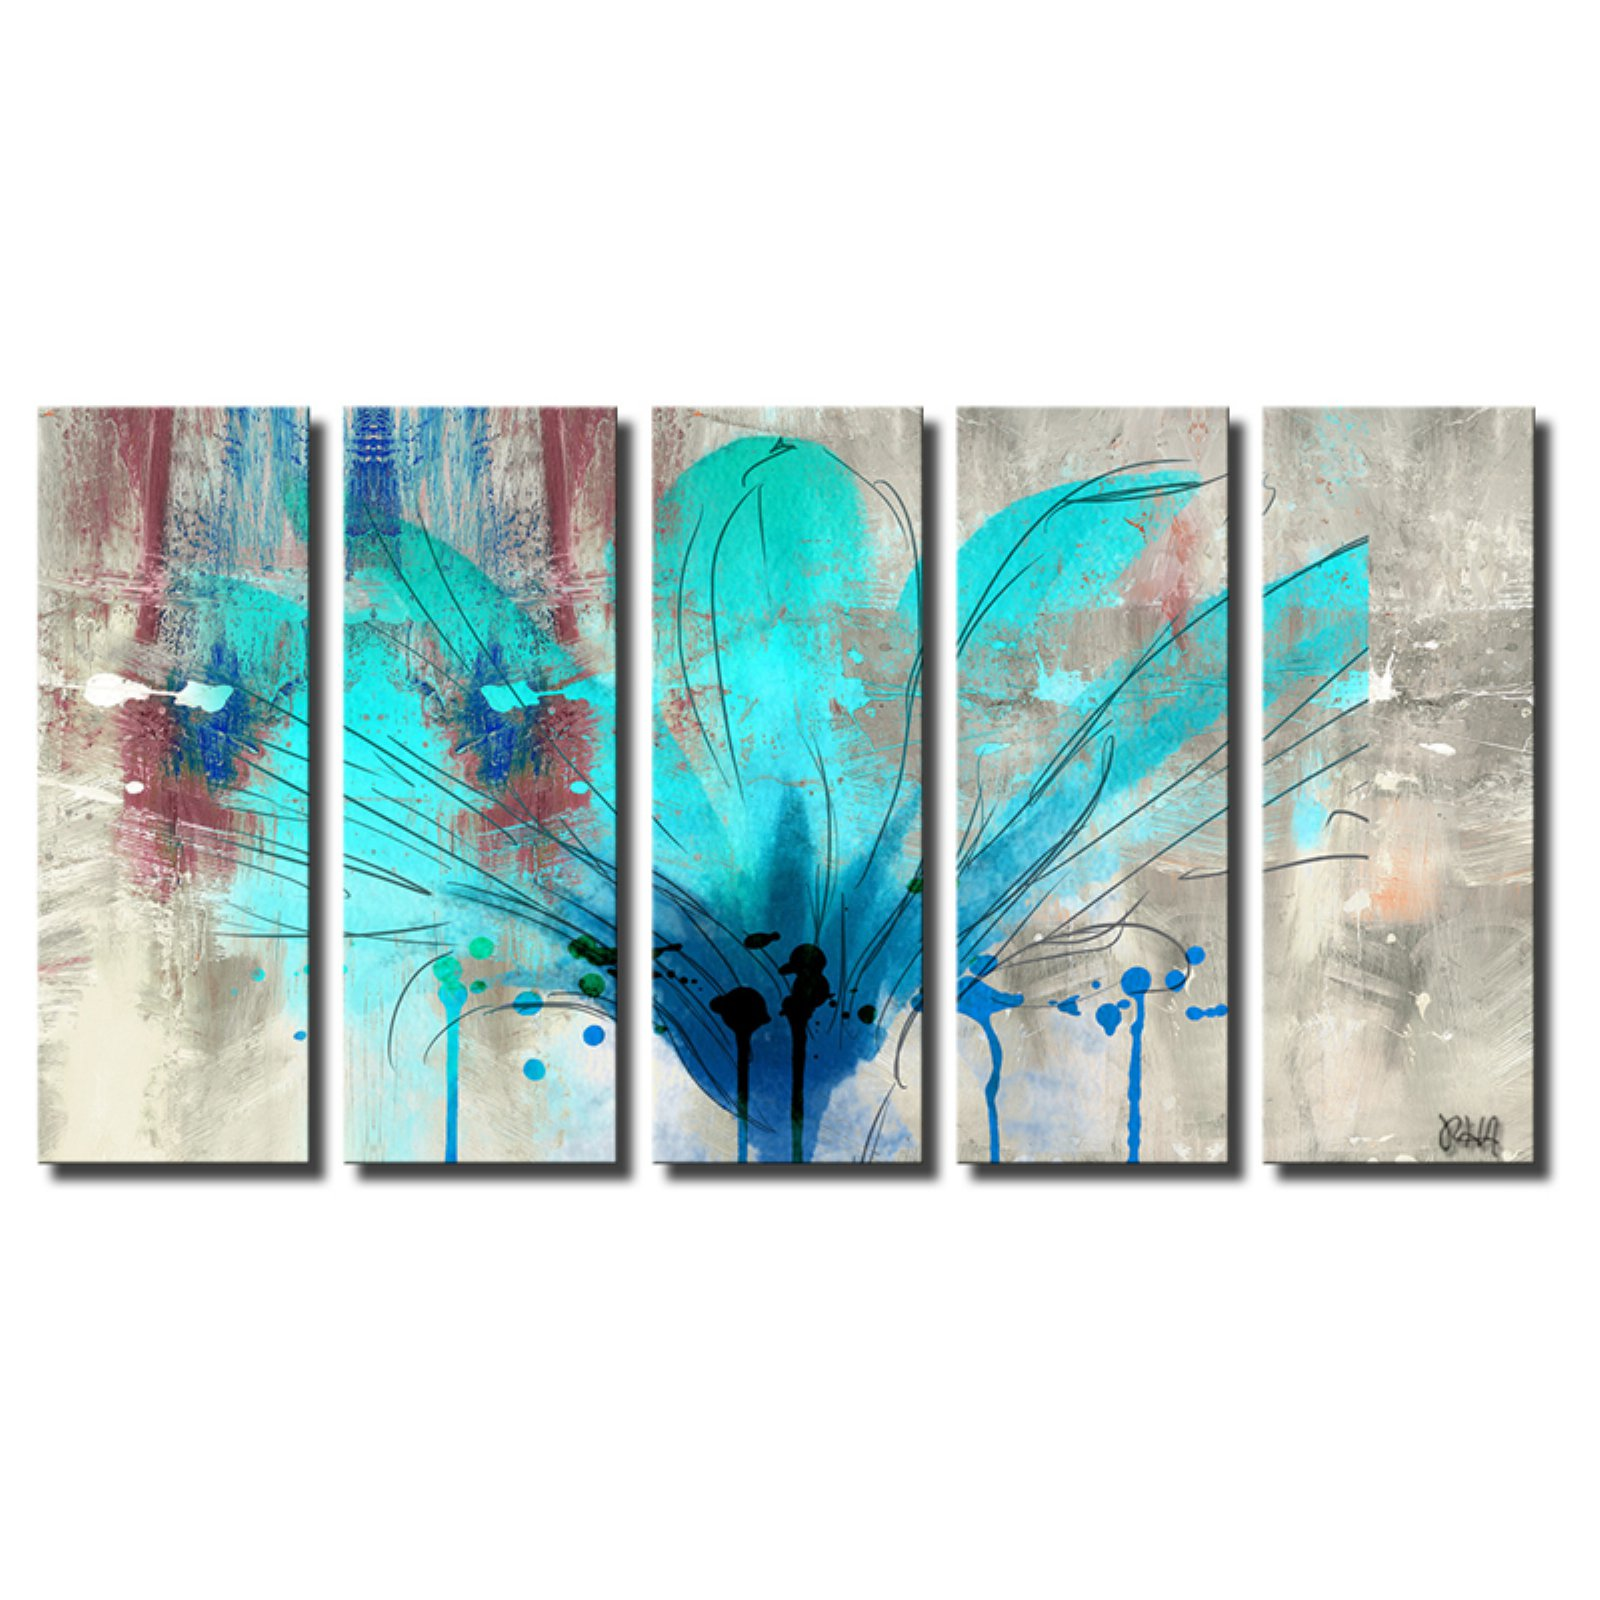 Ready2HangArt Painted Petals LII Canvas Wall Art - 5 pc. Set